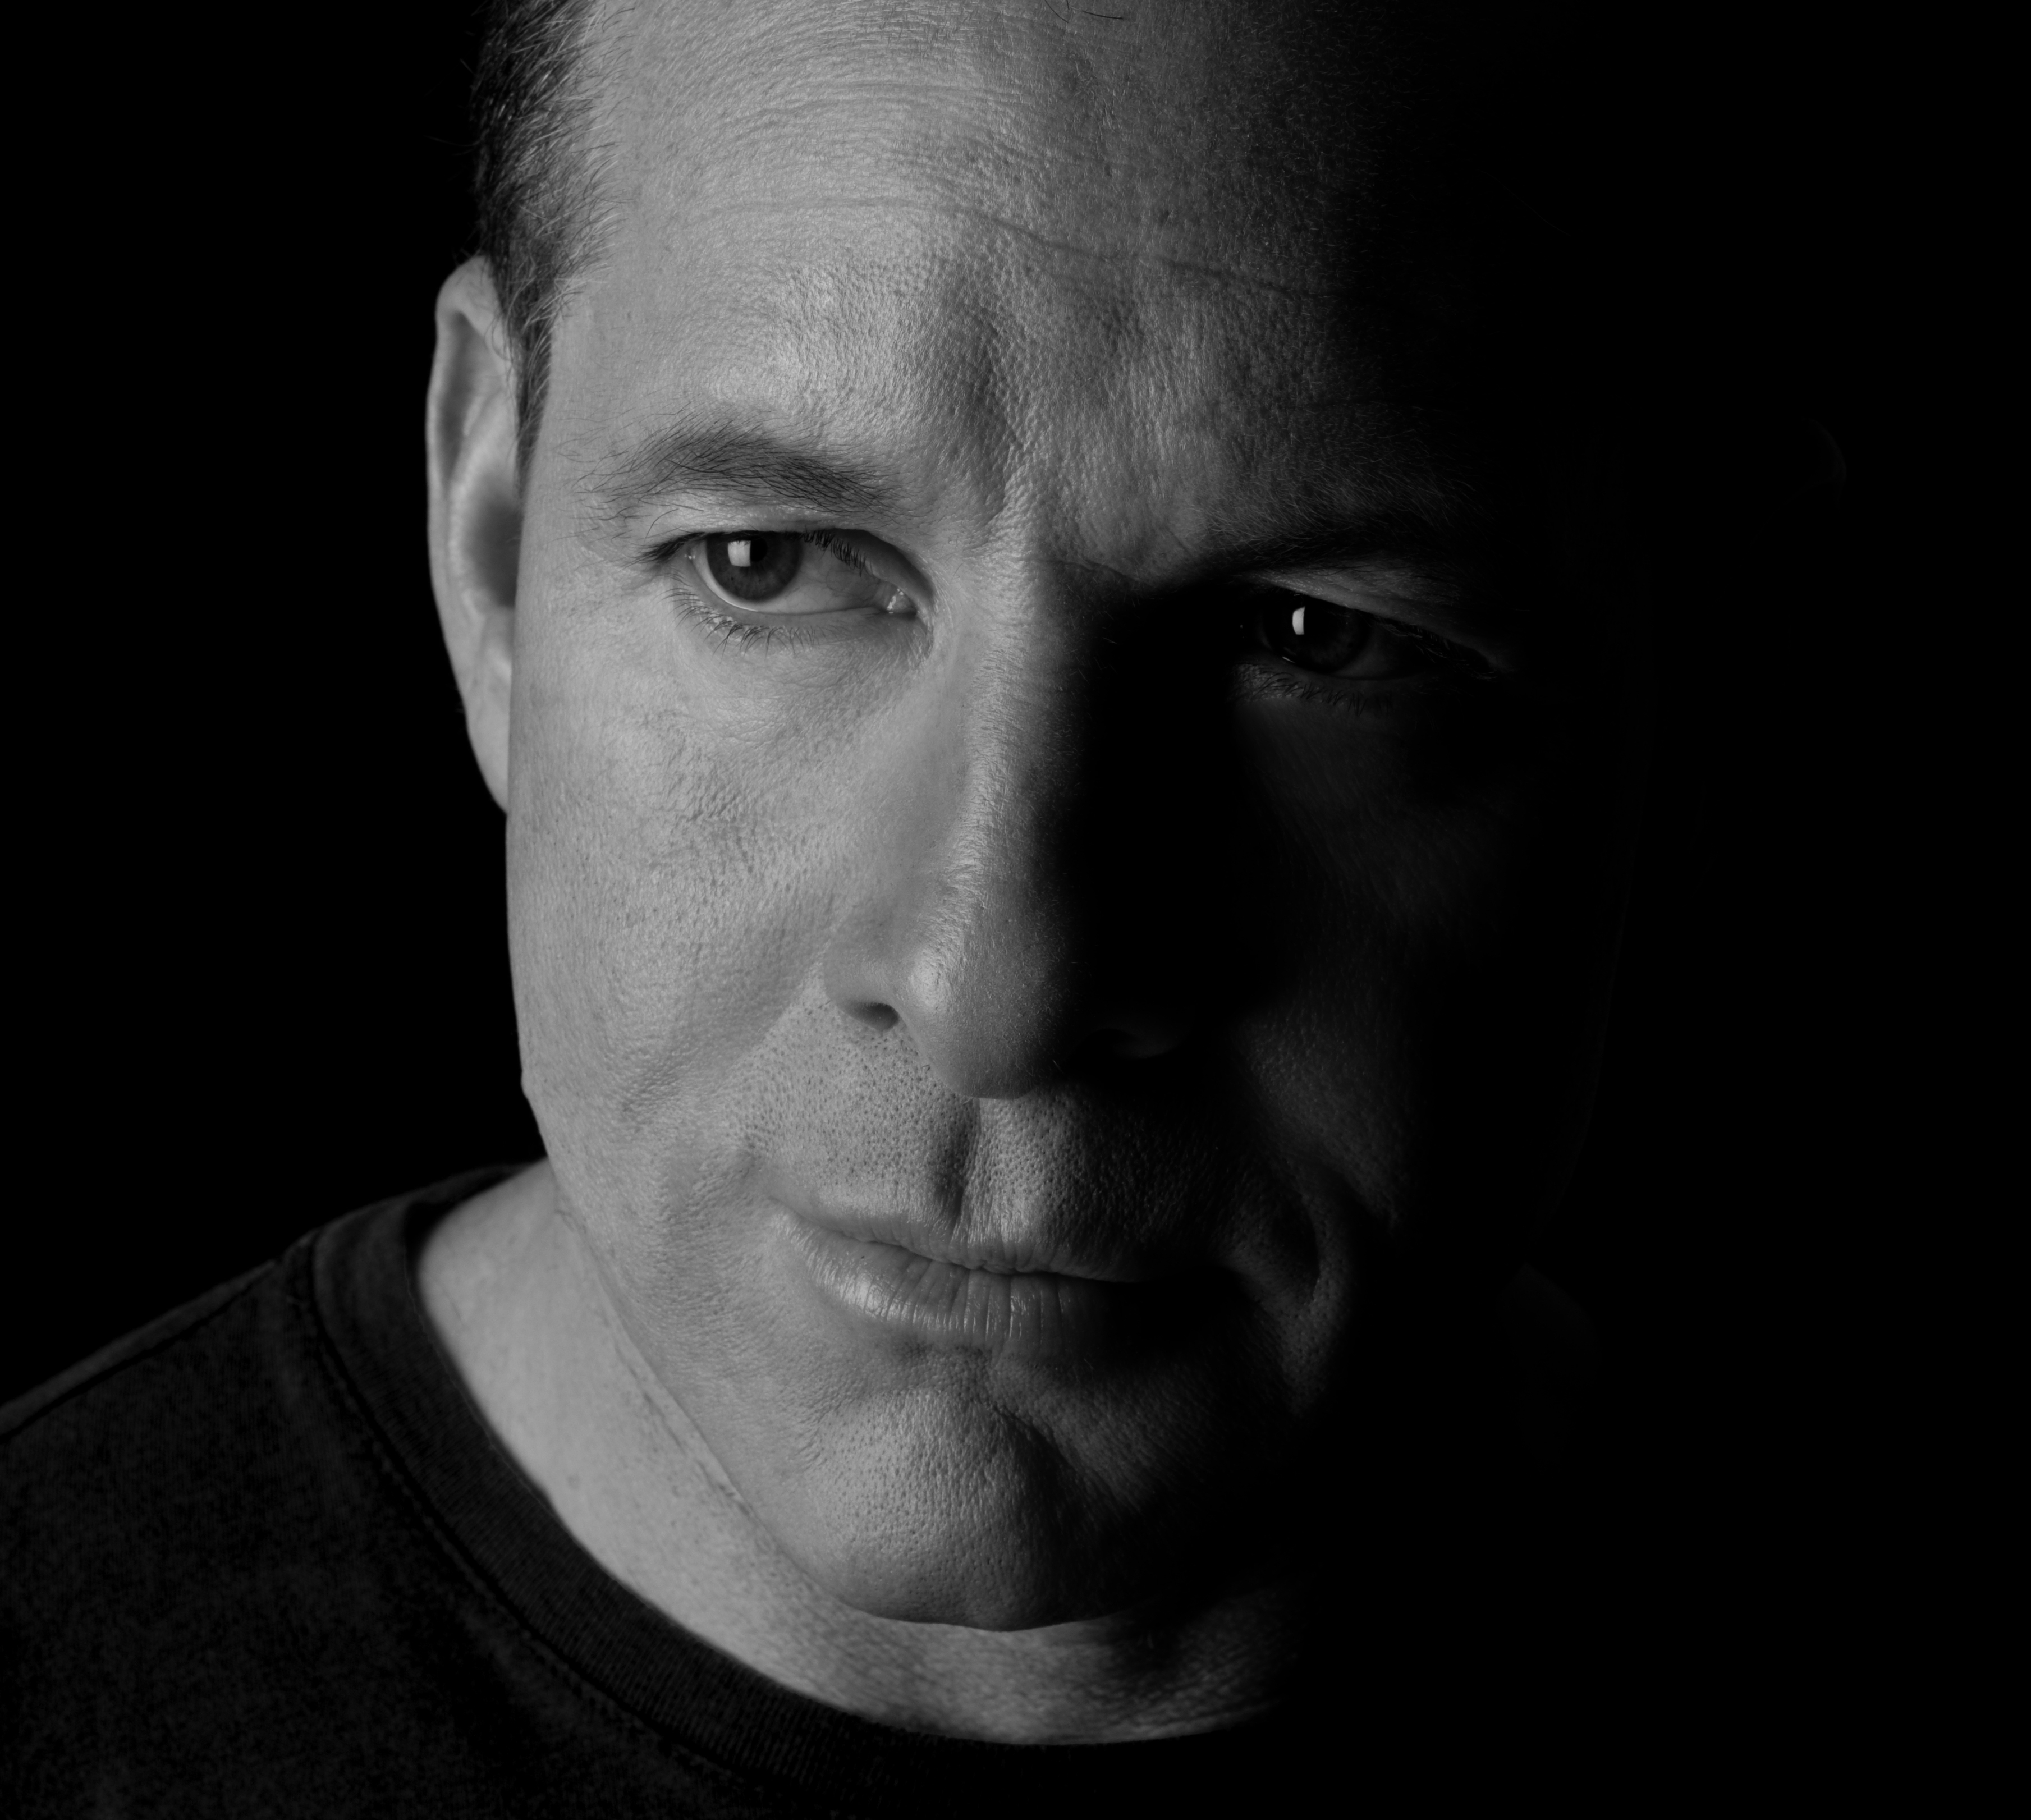 Steve Guttenberg has starred in such films as 1982's Diner, 1984's Police Academy and 1985's Cocoon. You can follow him on Twitter at @SGuttenberg.